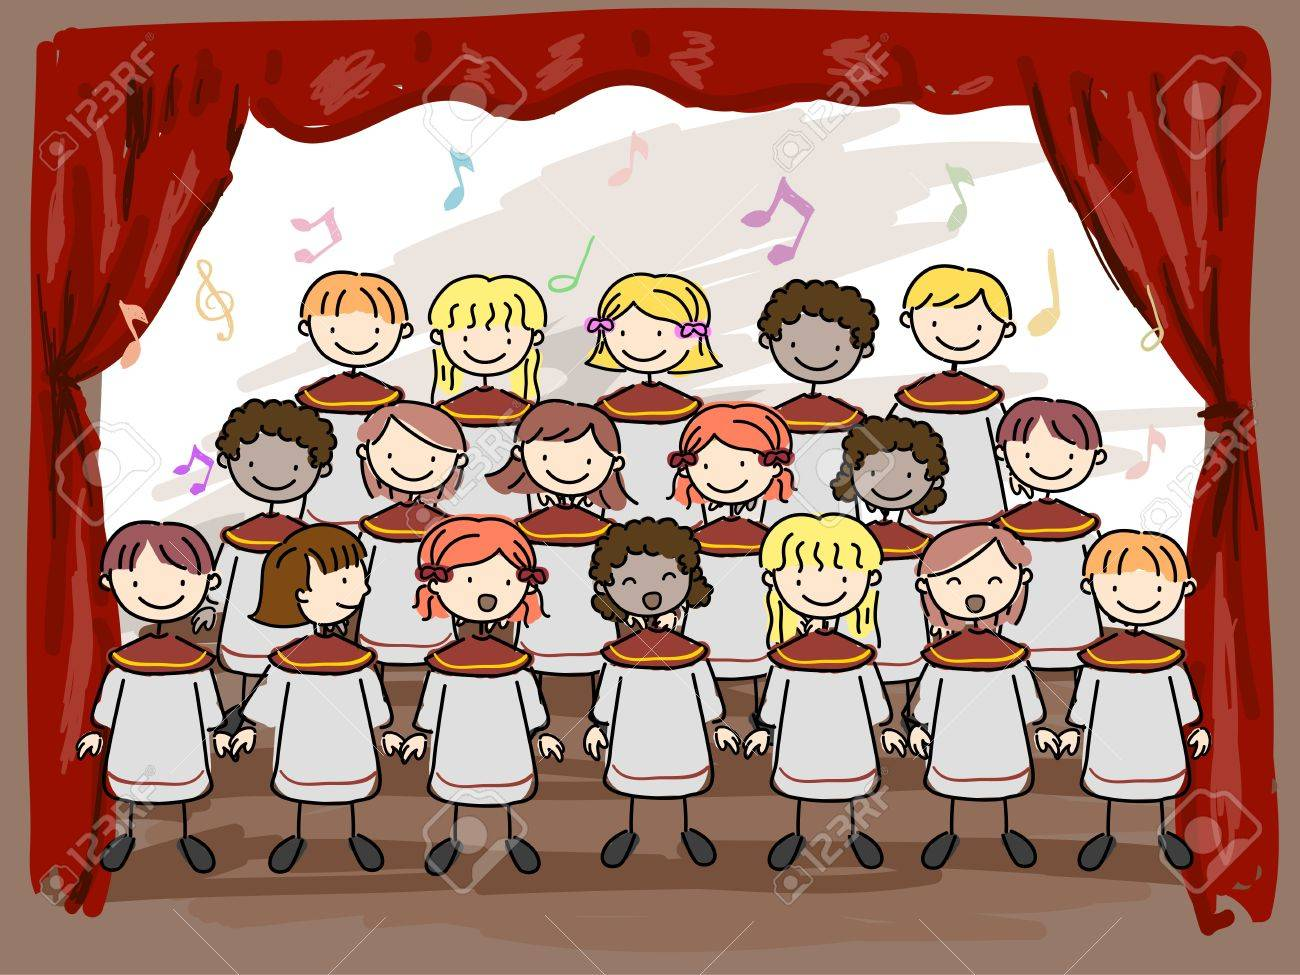 Illustration of a Children's Choir Performing on Stage Stock Illustration - 8906520